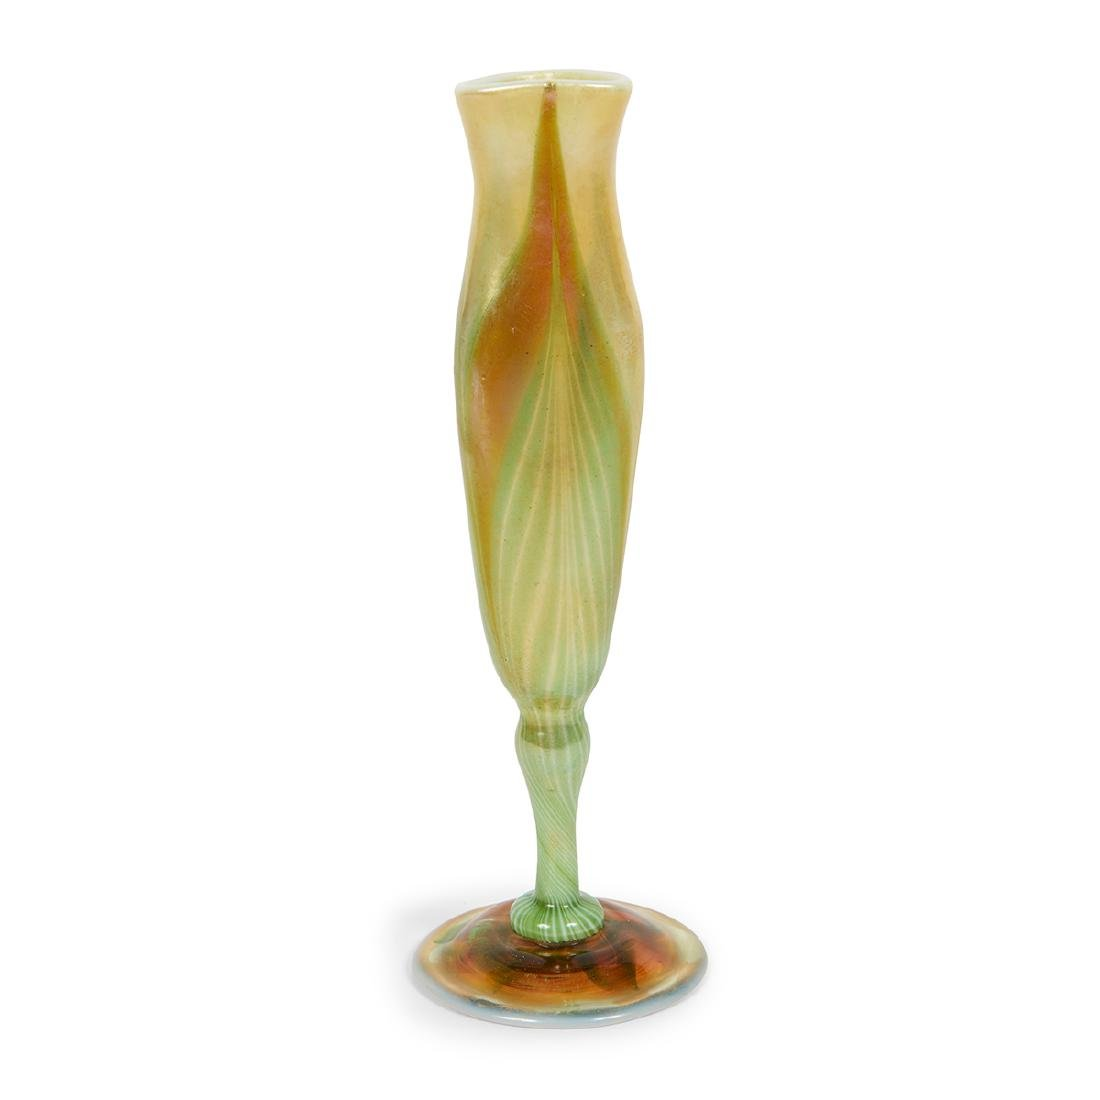 L.C. Tiffany Favrile Pulled Feather bud vase - 2